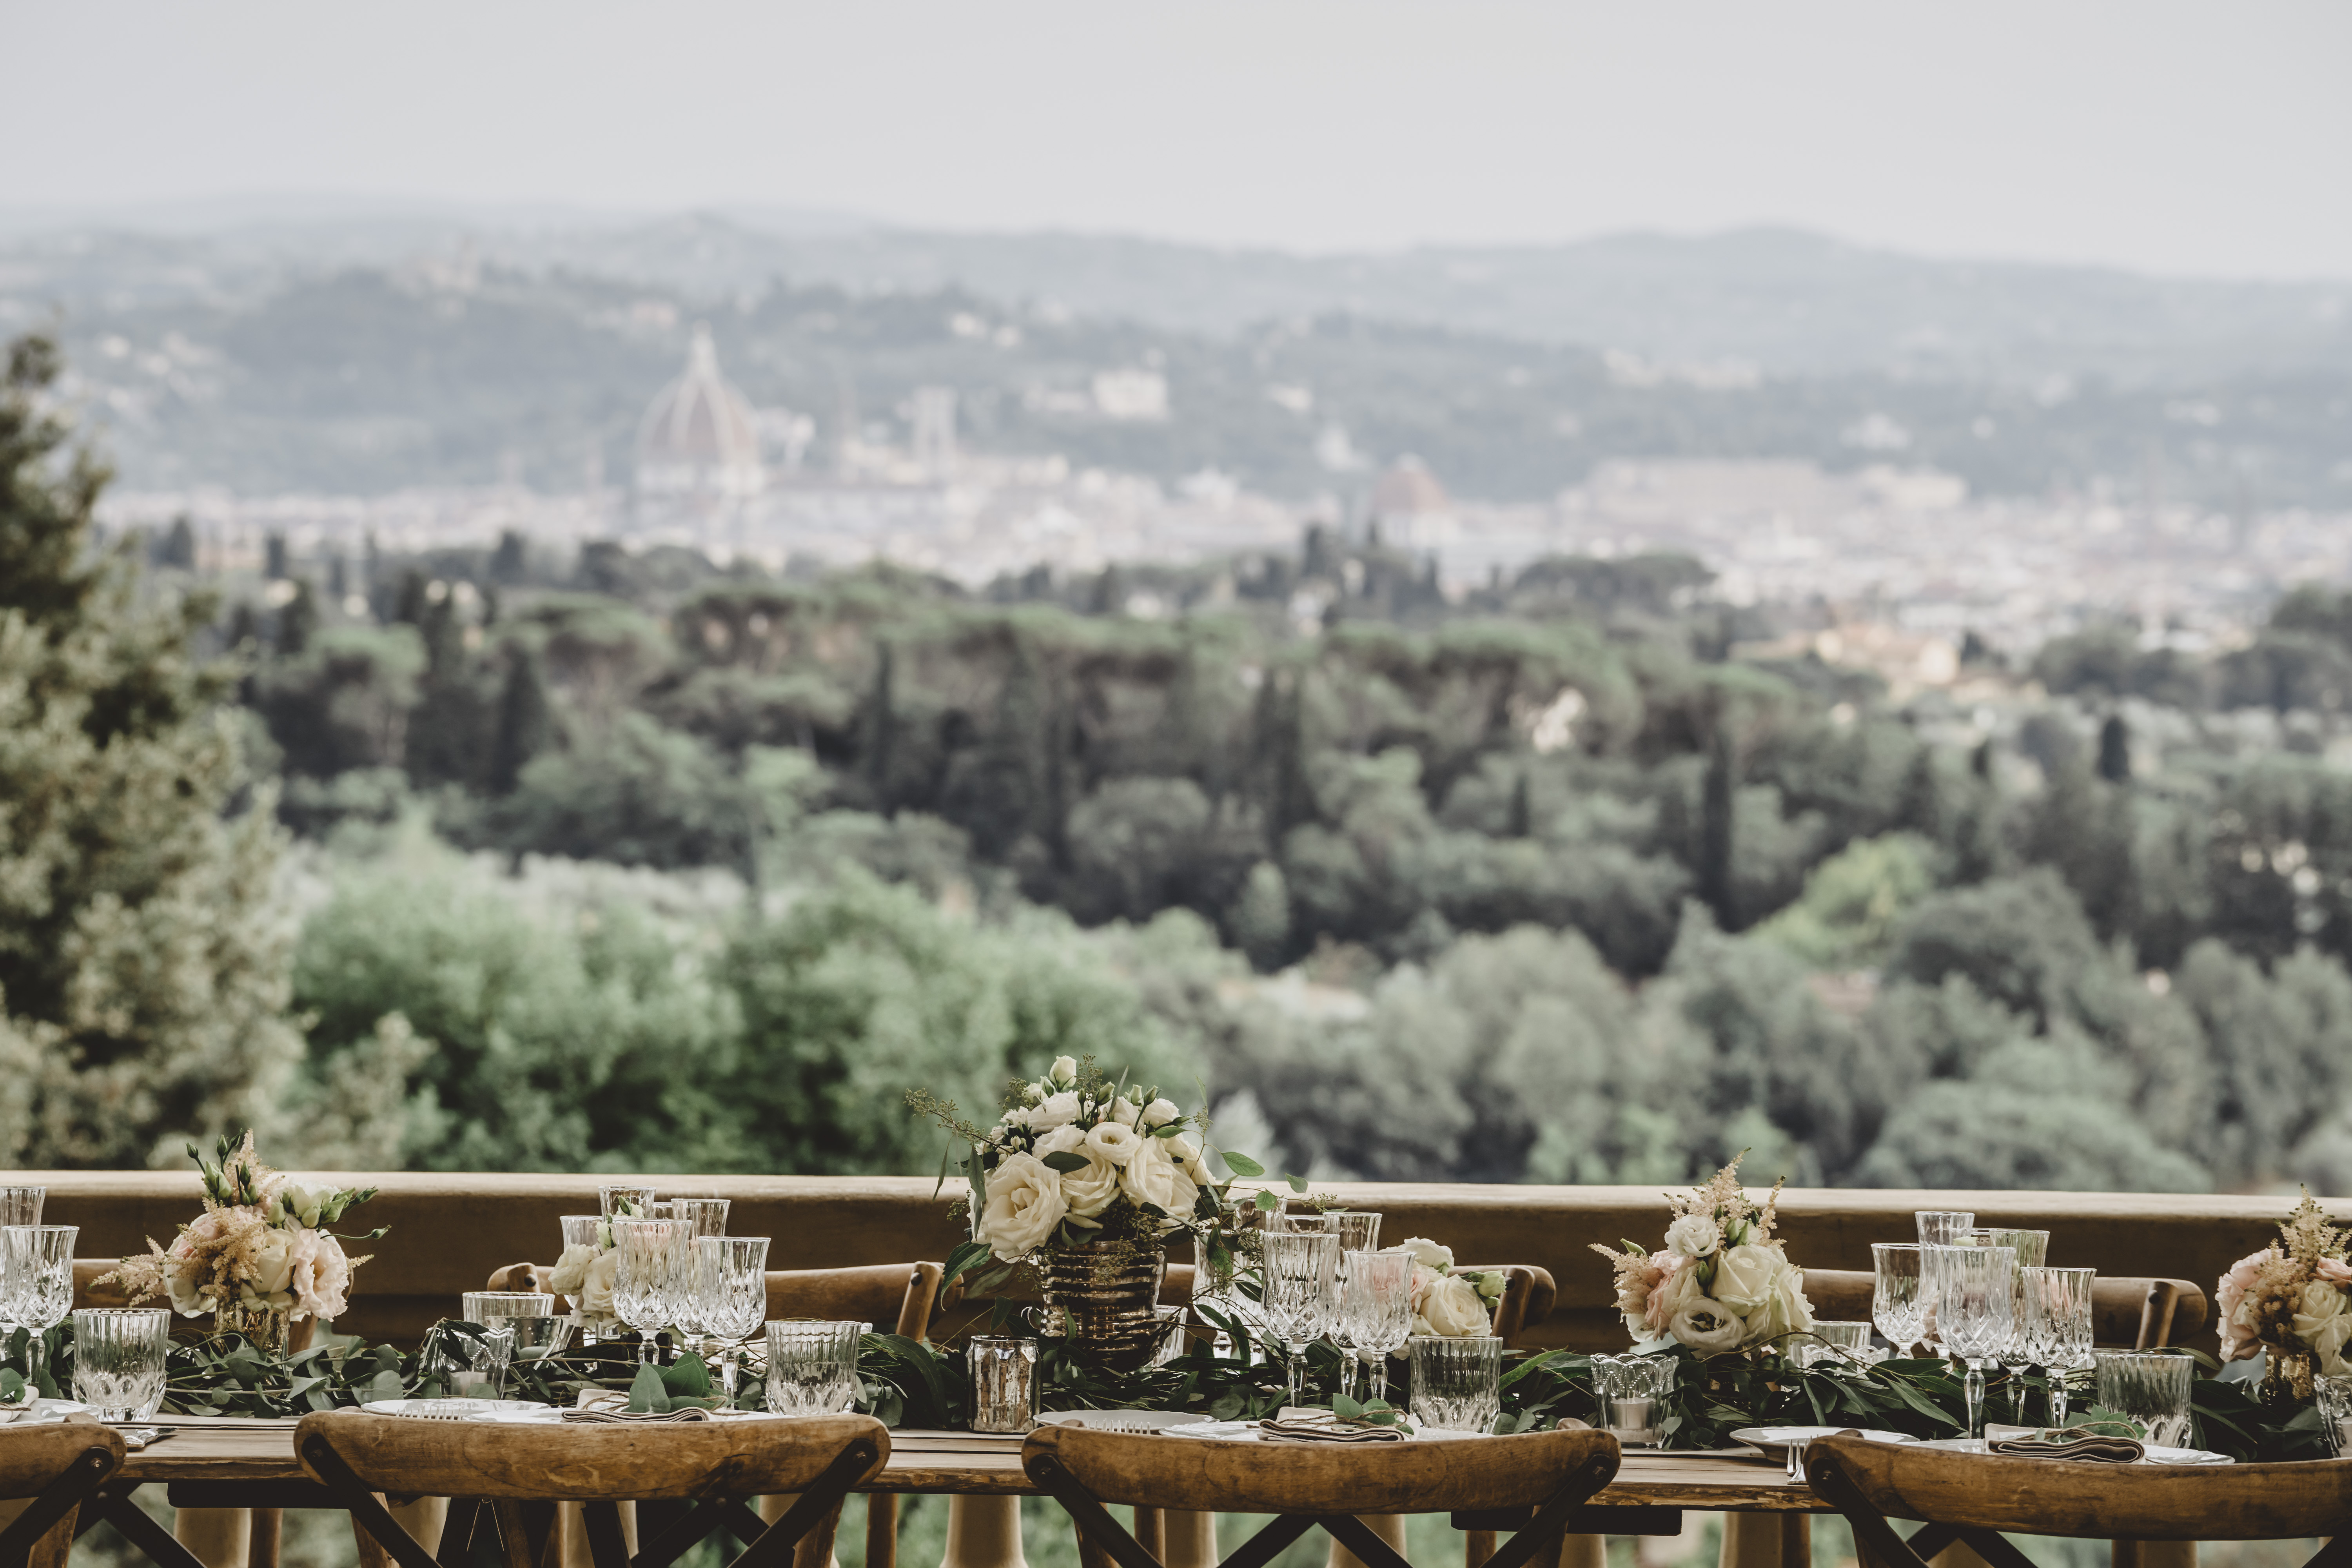 panoramic view from the terrace of the wedding villa nestled in the Tuscan hills